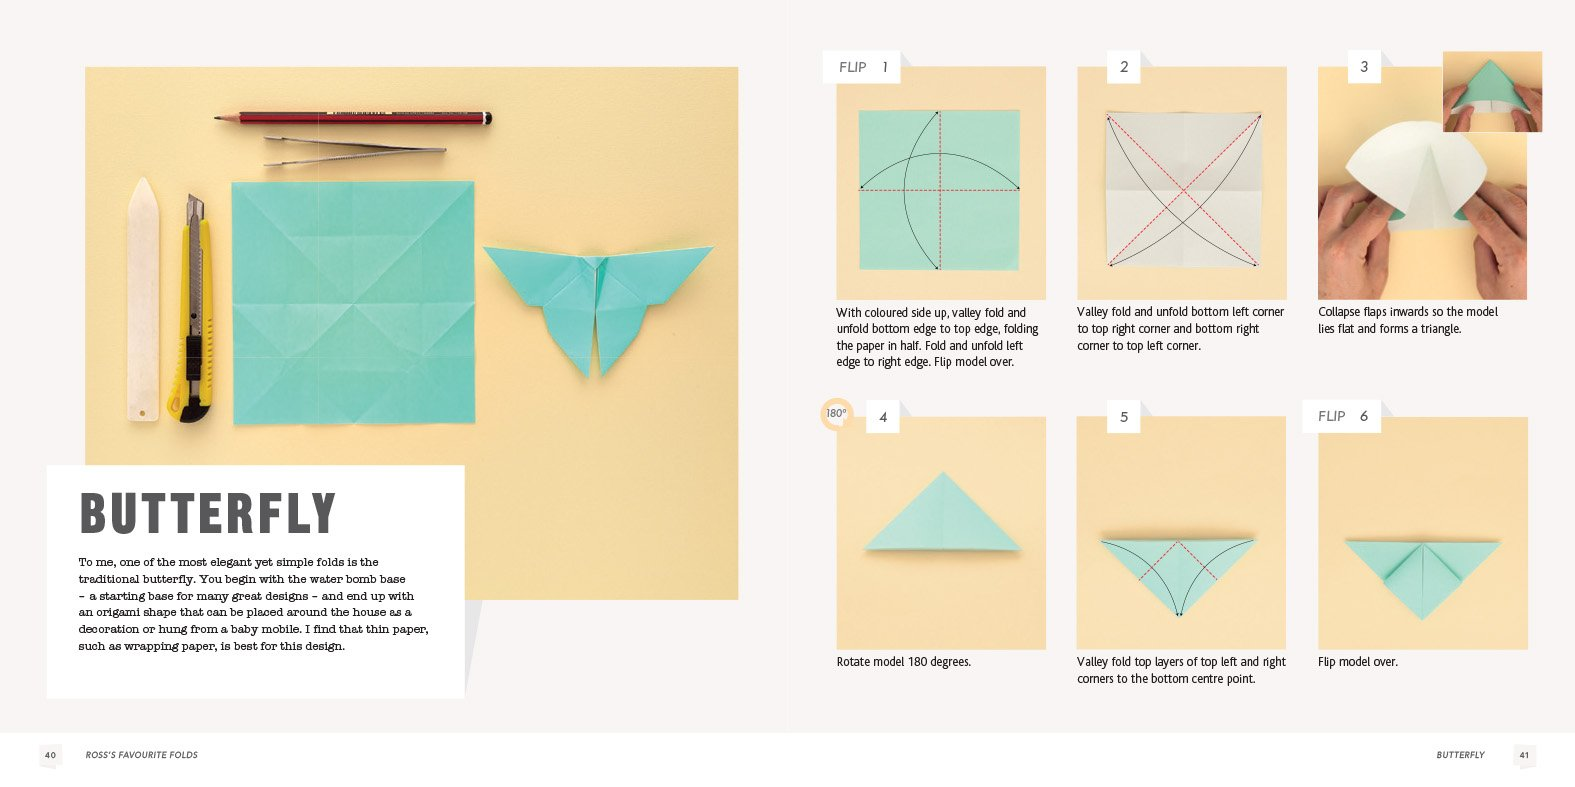 Love origami 20 simple paper projects to fold style share love origami 20 simple paper projects to fold style share amazon ross symons 9781784723620 books jeuxipadfo Image collections